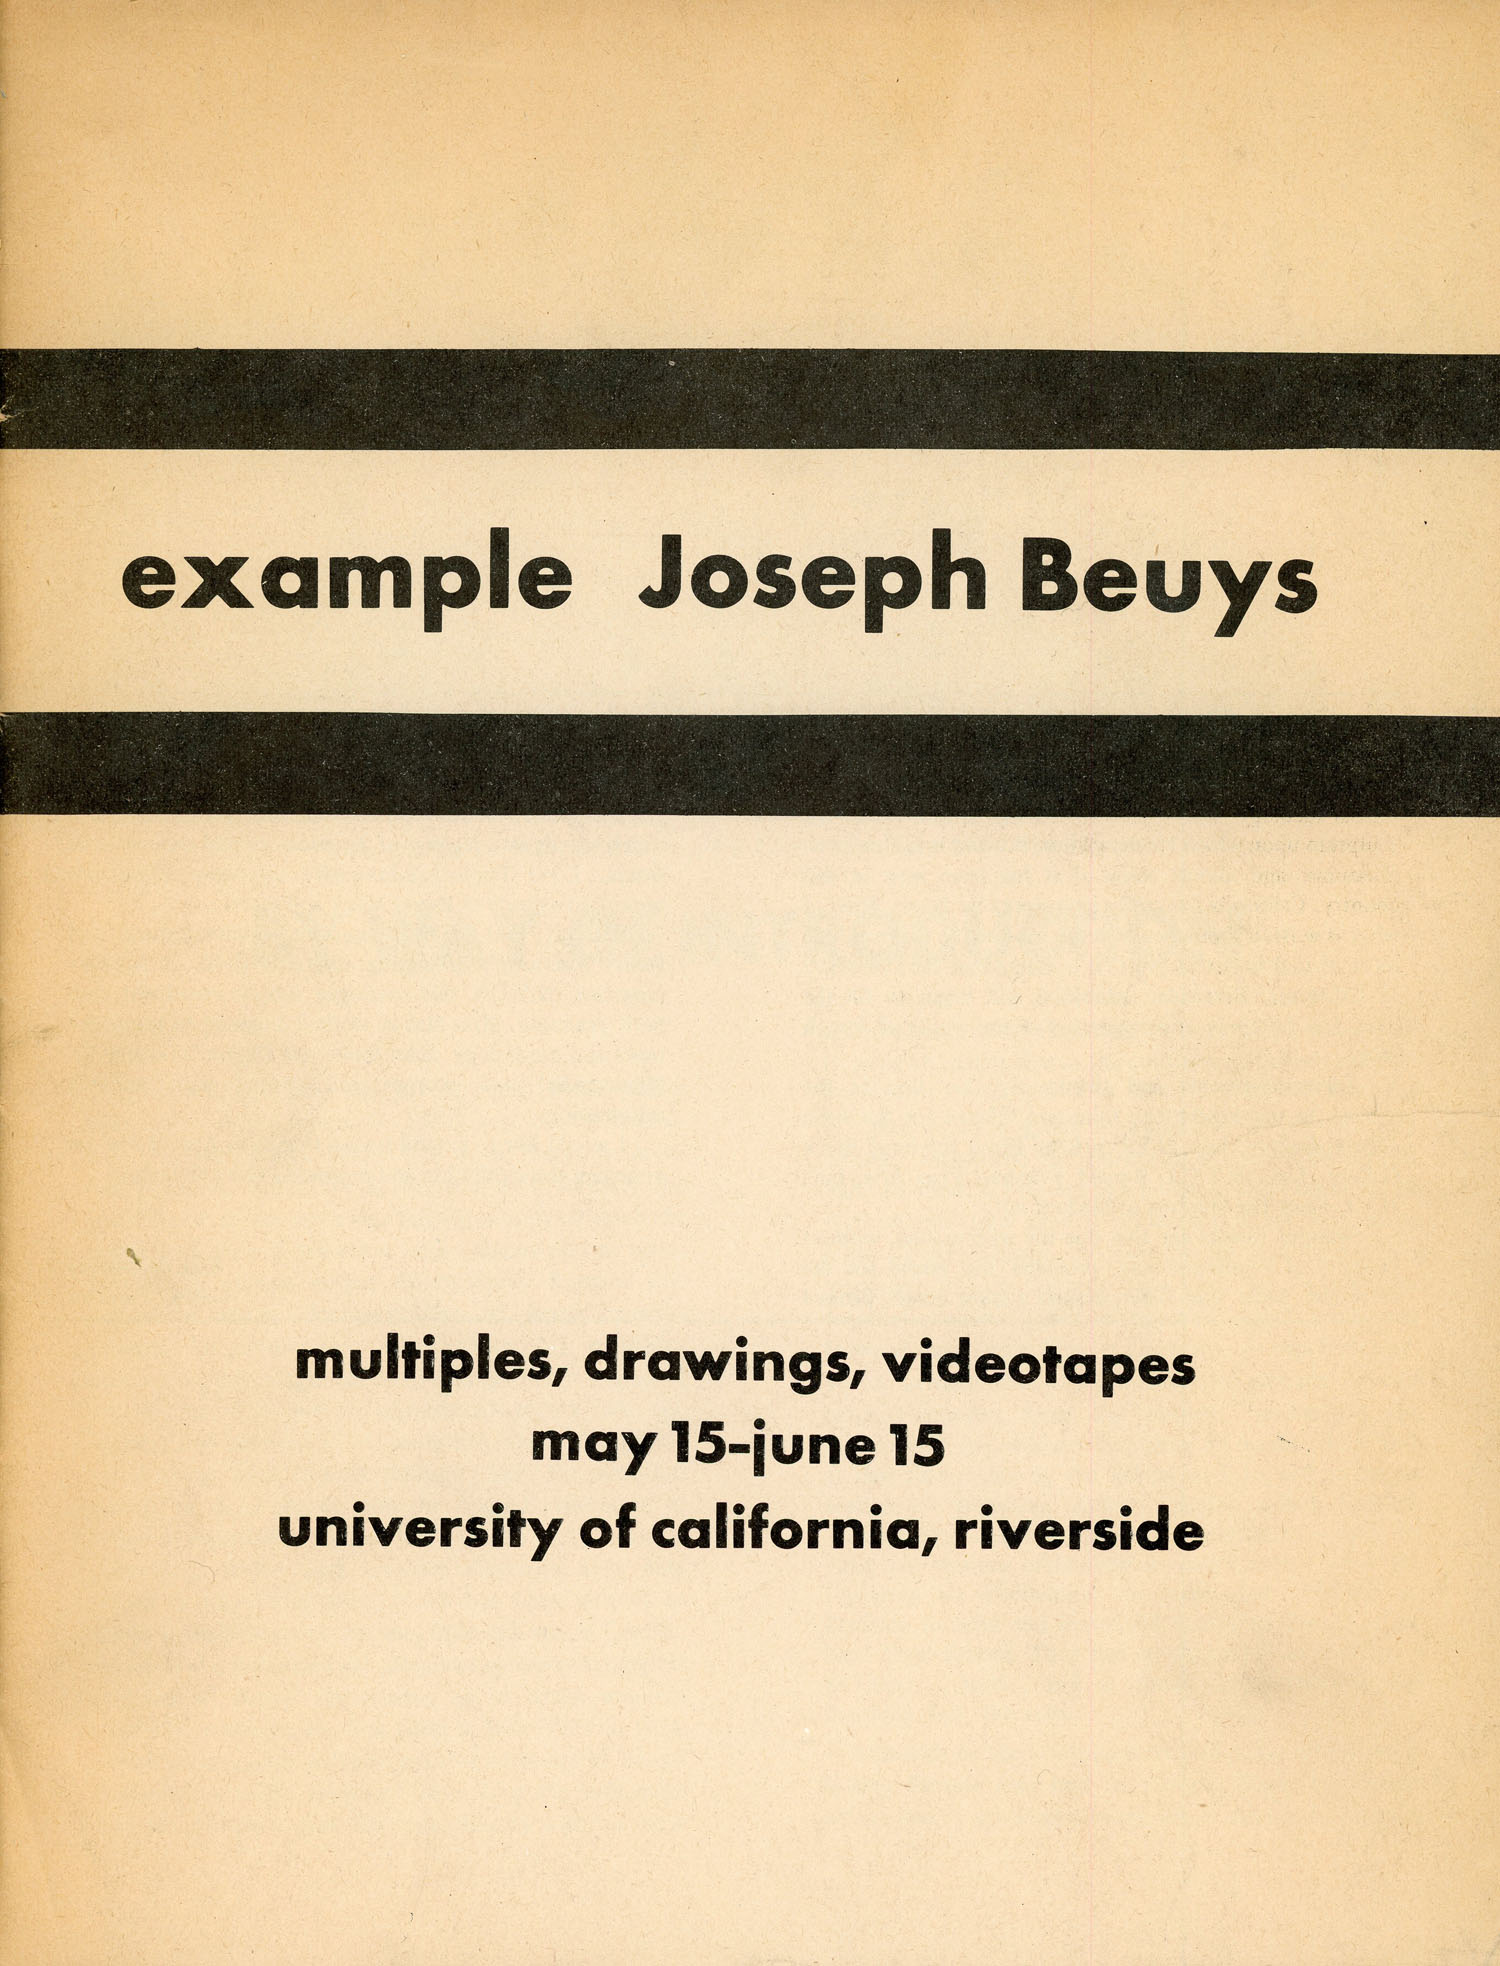 Alan Moore with the University of California, Riverside, example Joseph Beuys, Exhibition Catalogue, c. 1974.